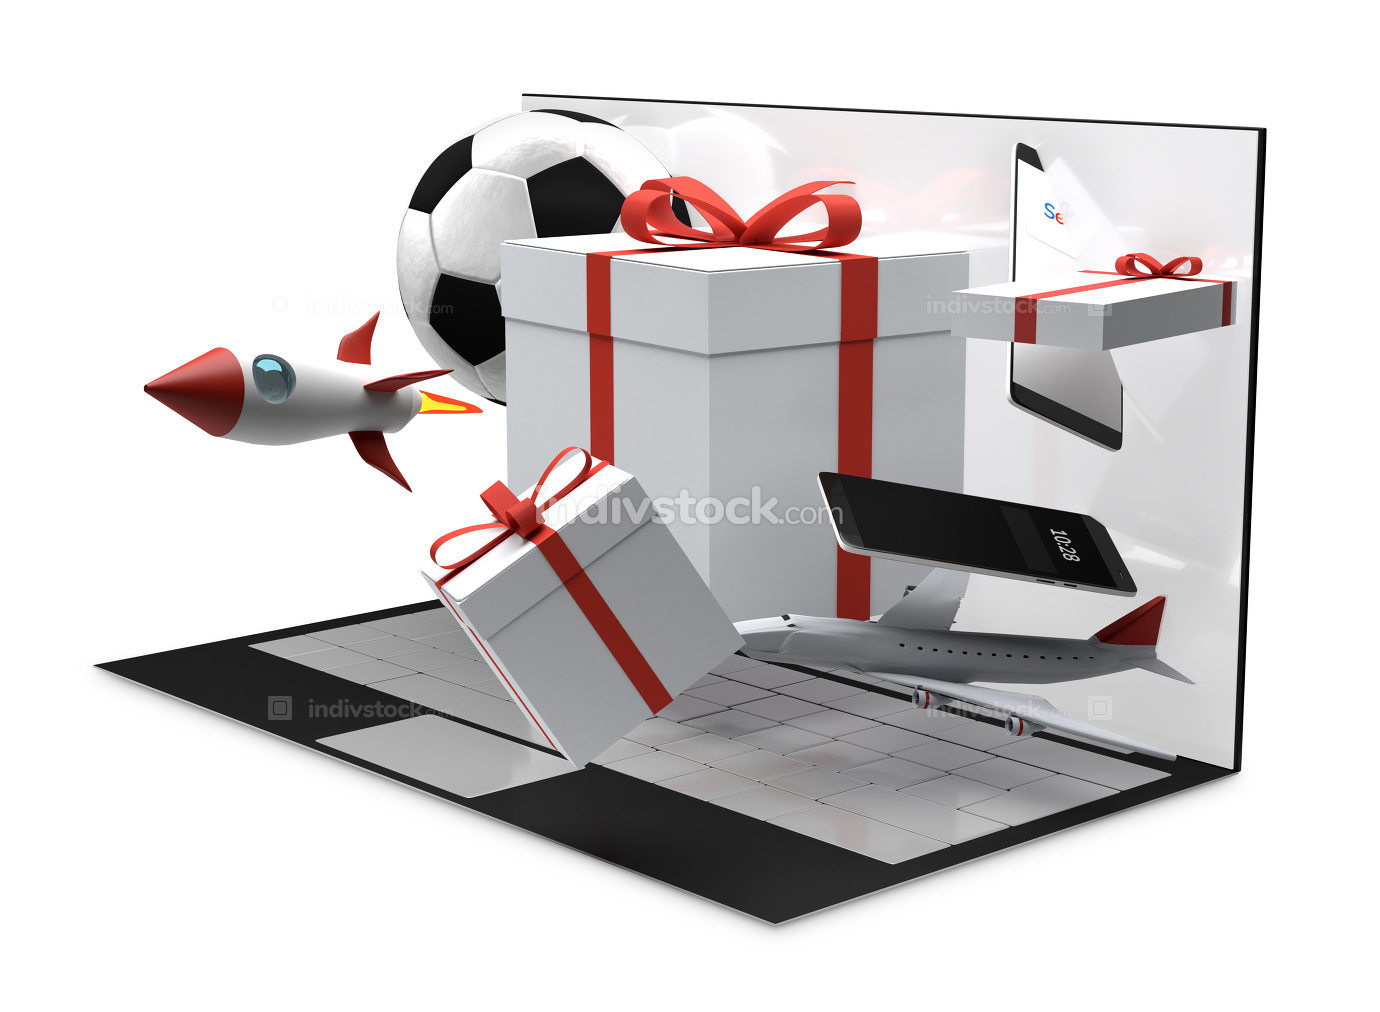 computer desktop gifts products 3d-illustration